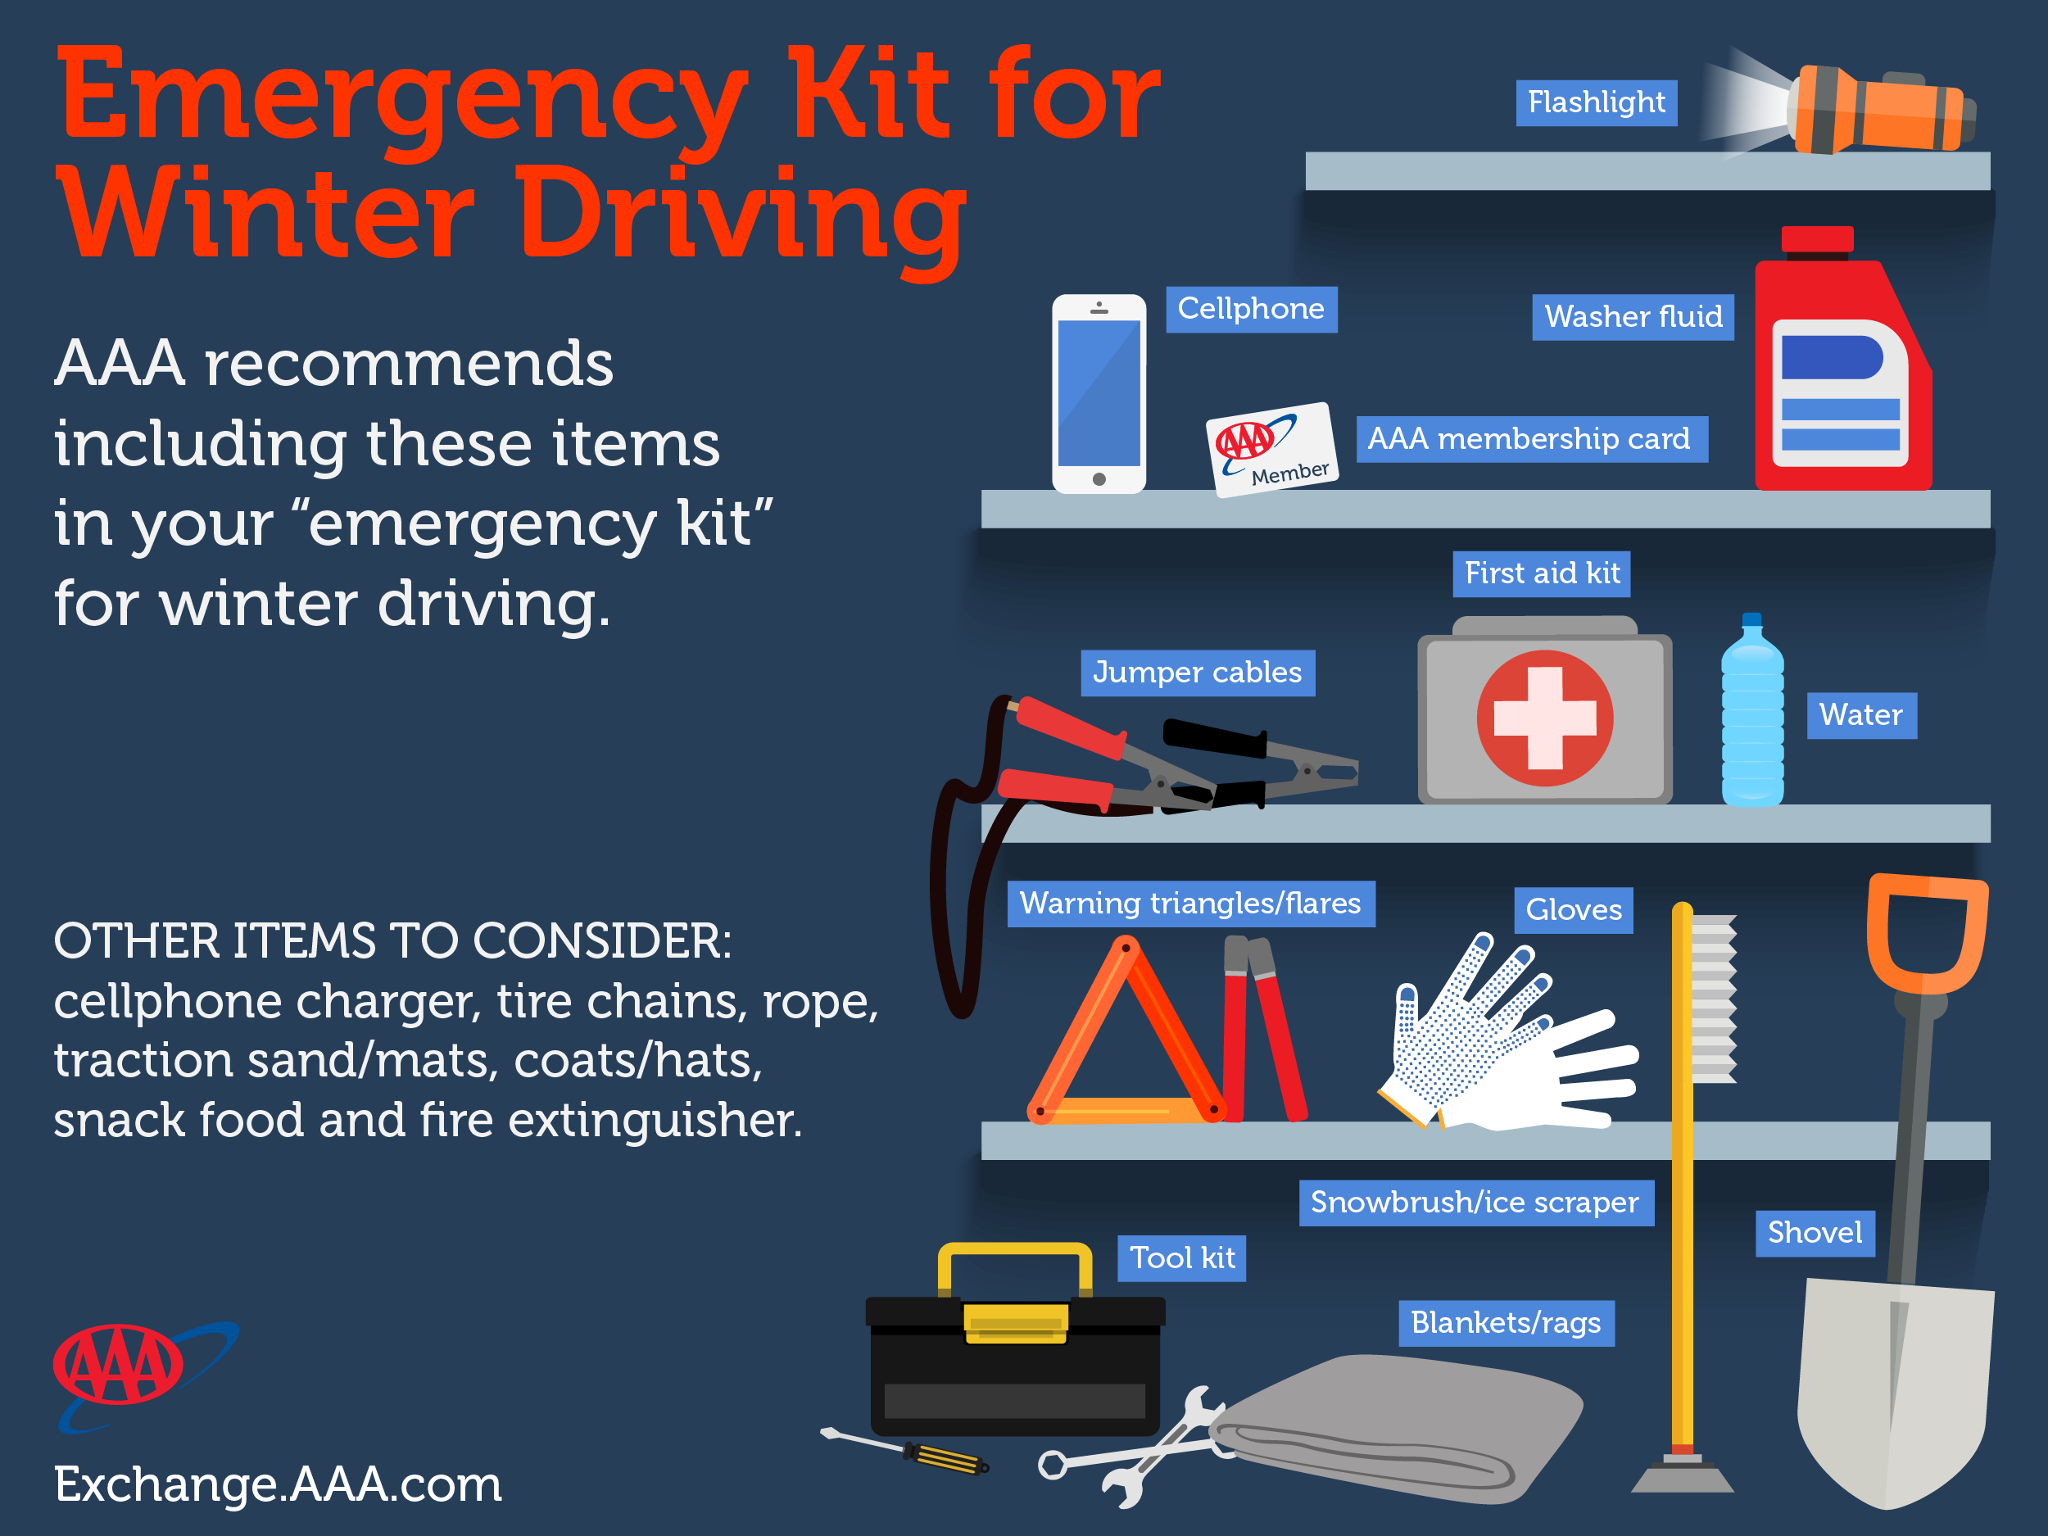 Emergency Kit For Winter Driving Are Your Ready For Winter Driving